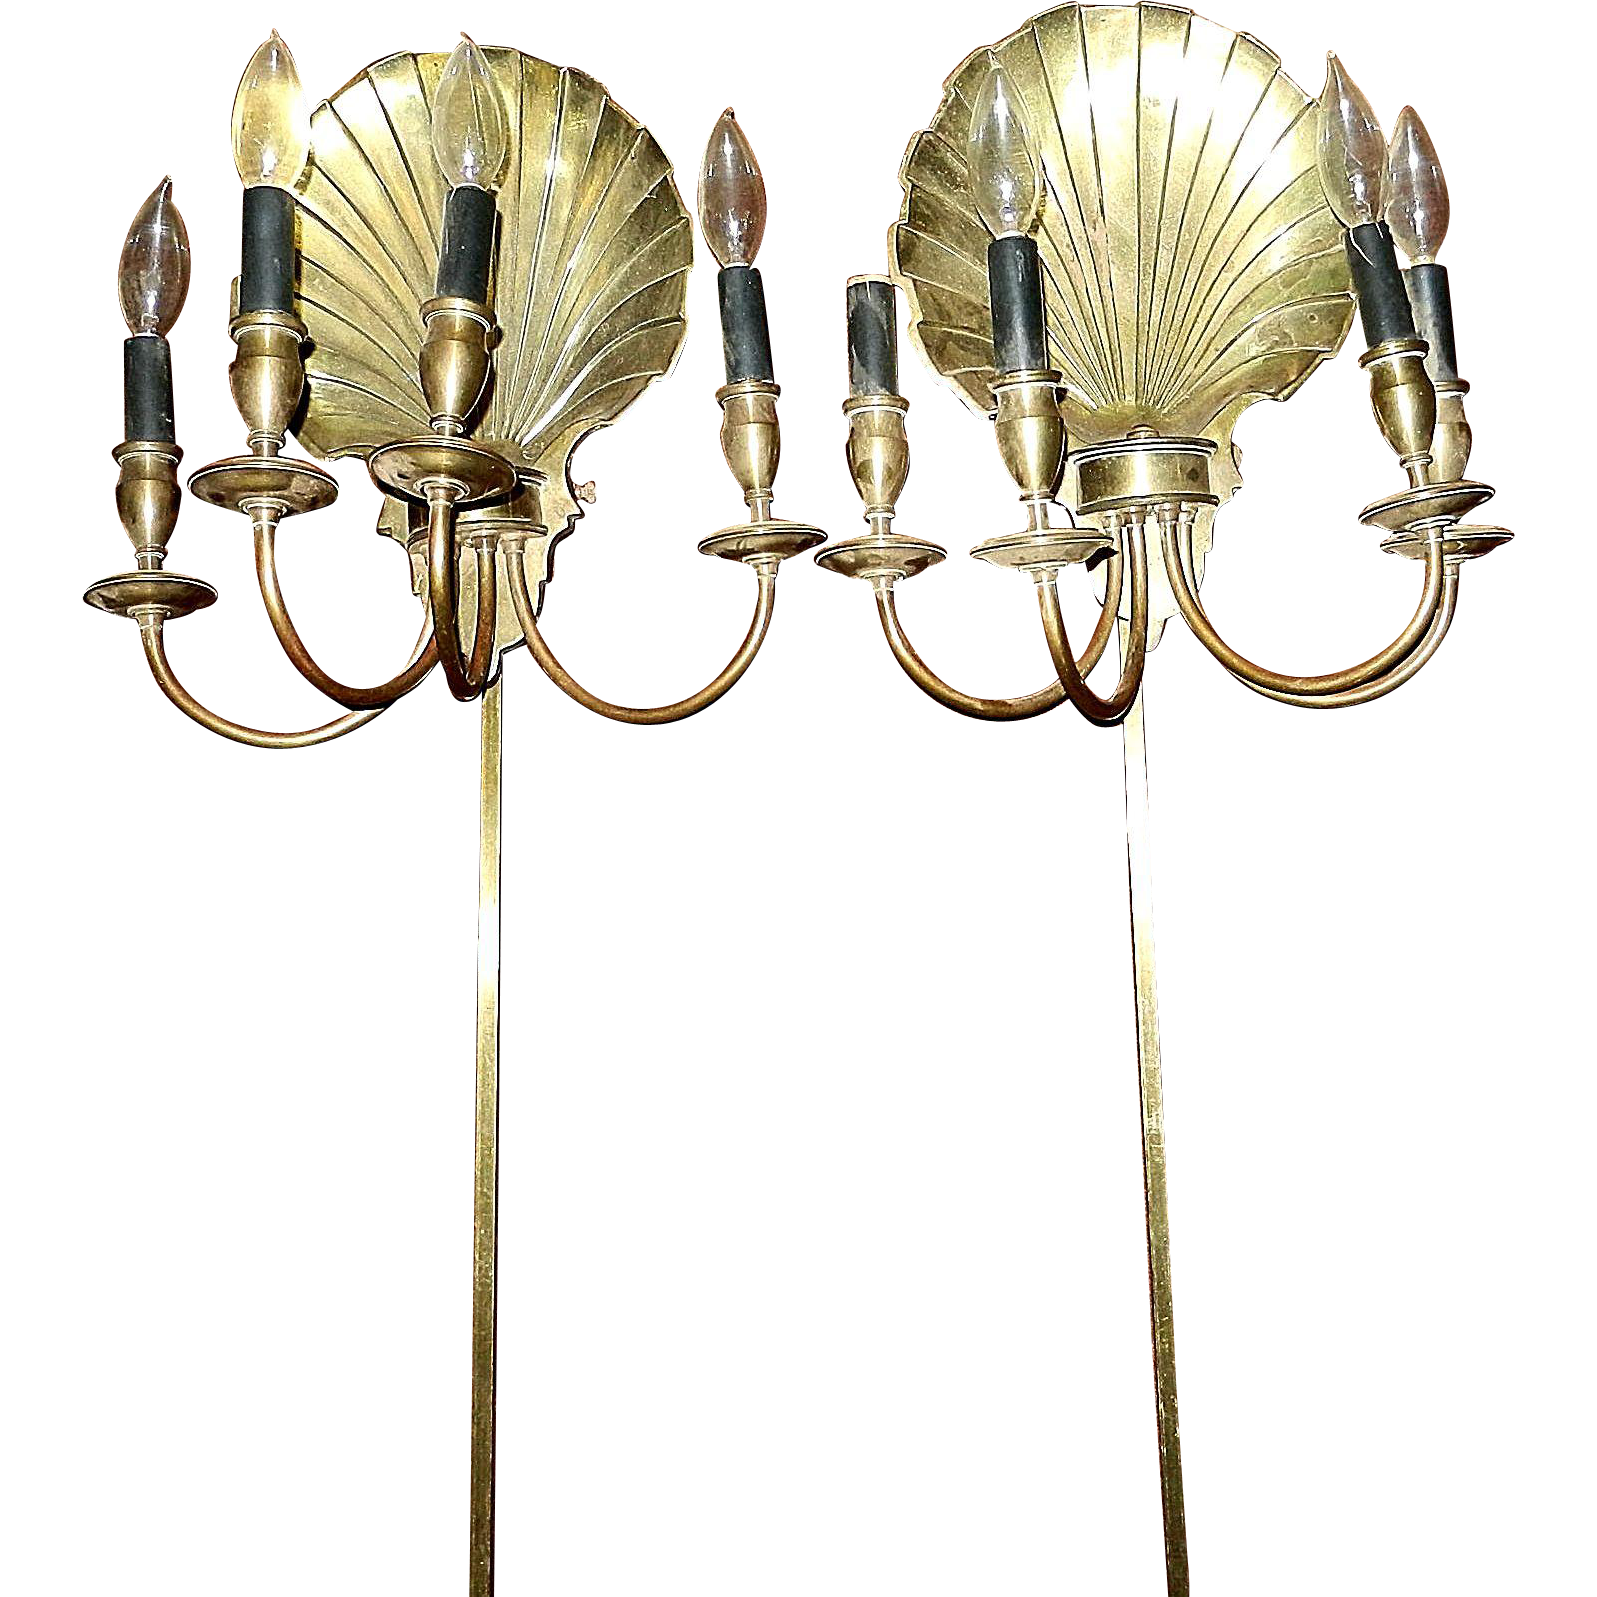 Brass Shell Wall Lights : Vintage Solid Brass Scallop Shell Sconce Wall Lamps from mygrandmotherhadone on Ruby Lane